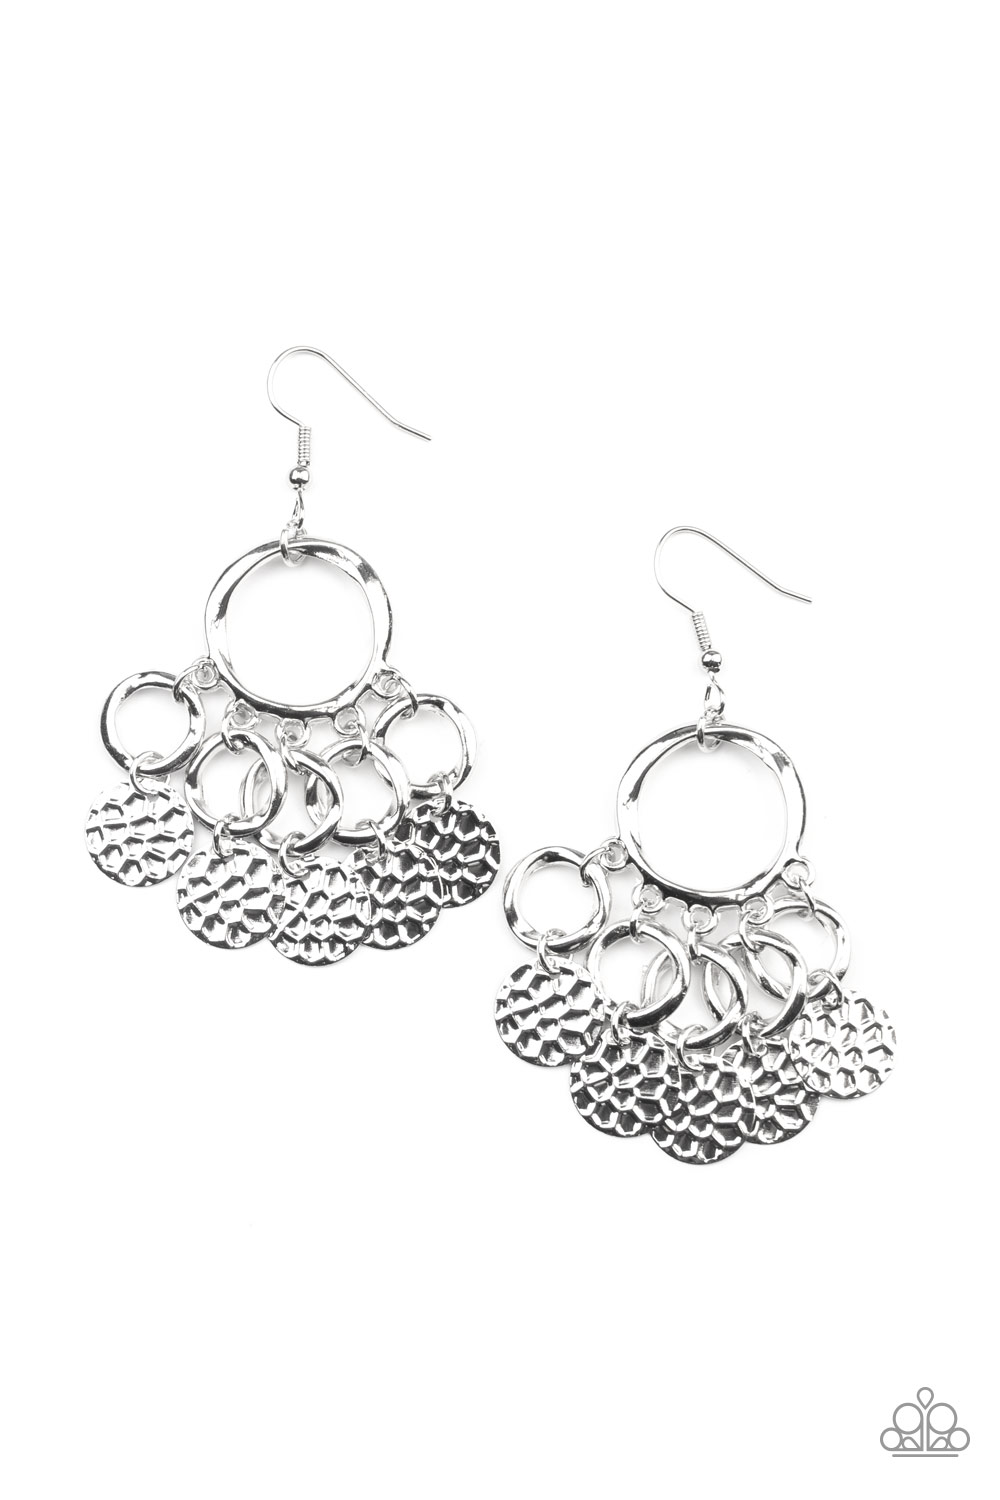 Paparazzi Partners in CHIME - Silver (3027)